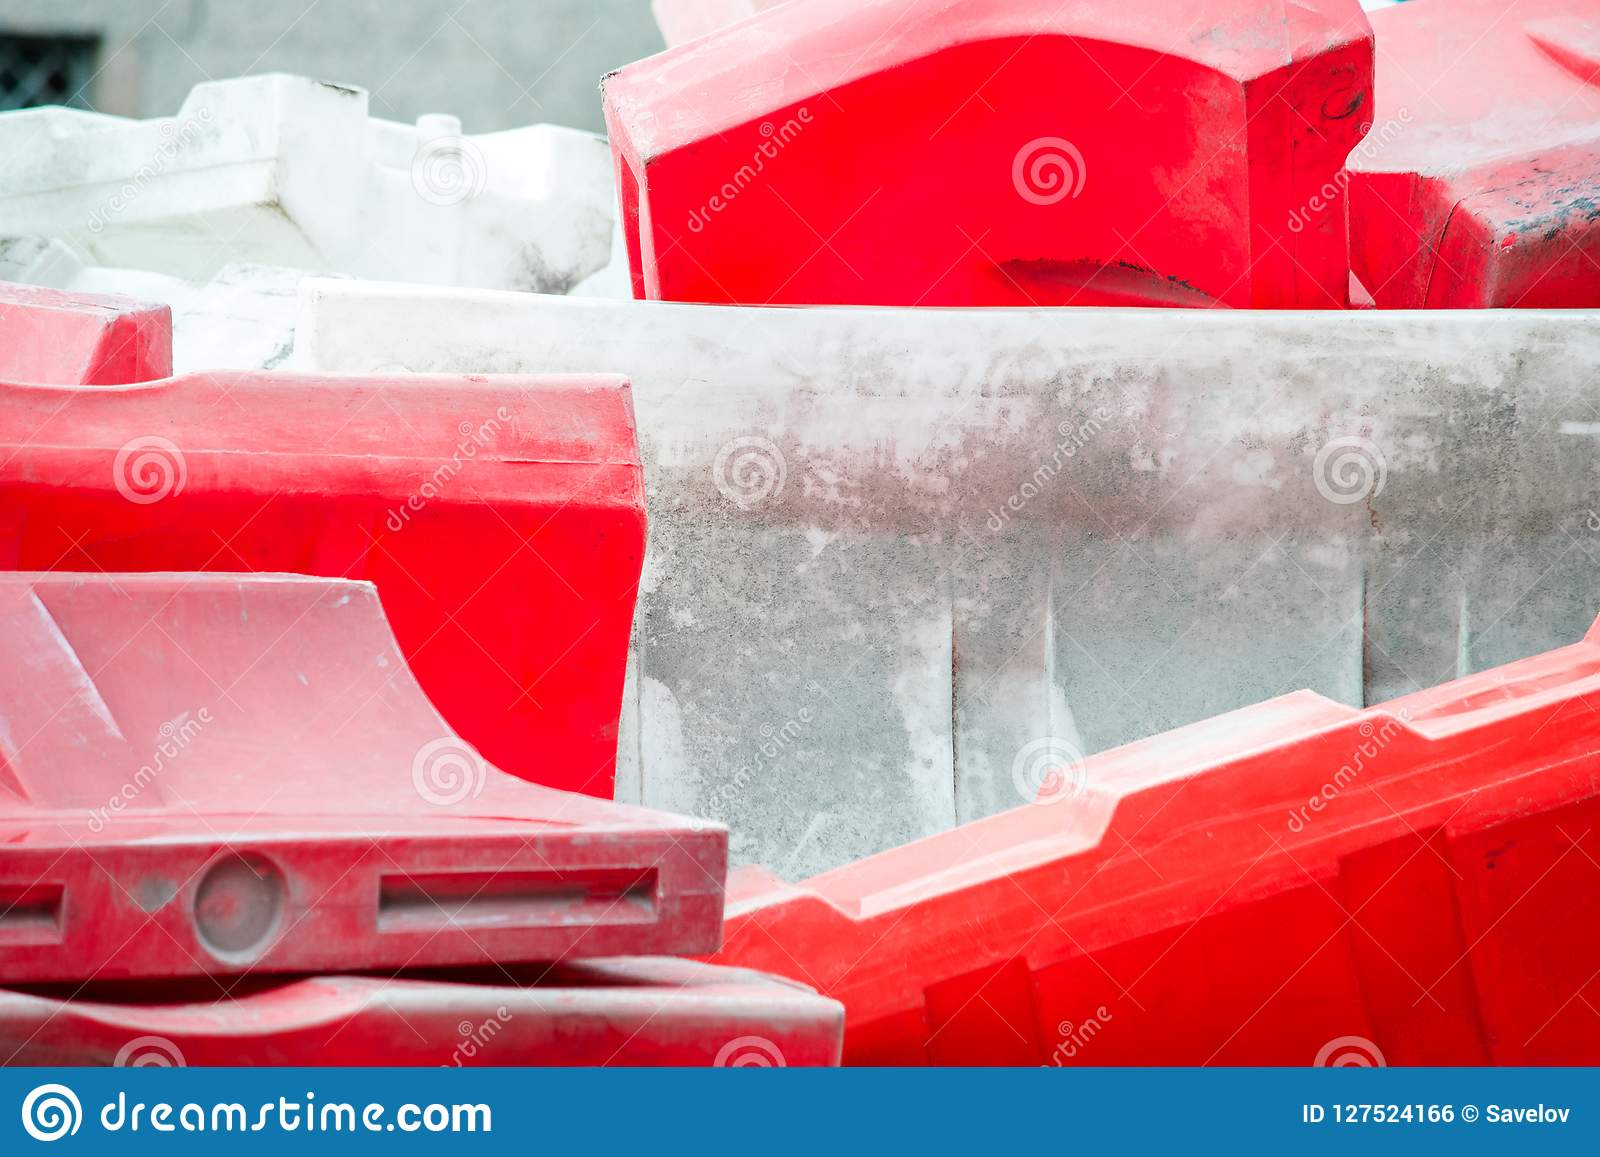 A Bunch Of Red And White Water-filled Plastic Road Barriers